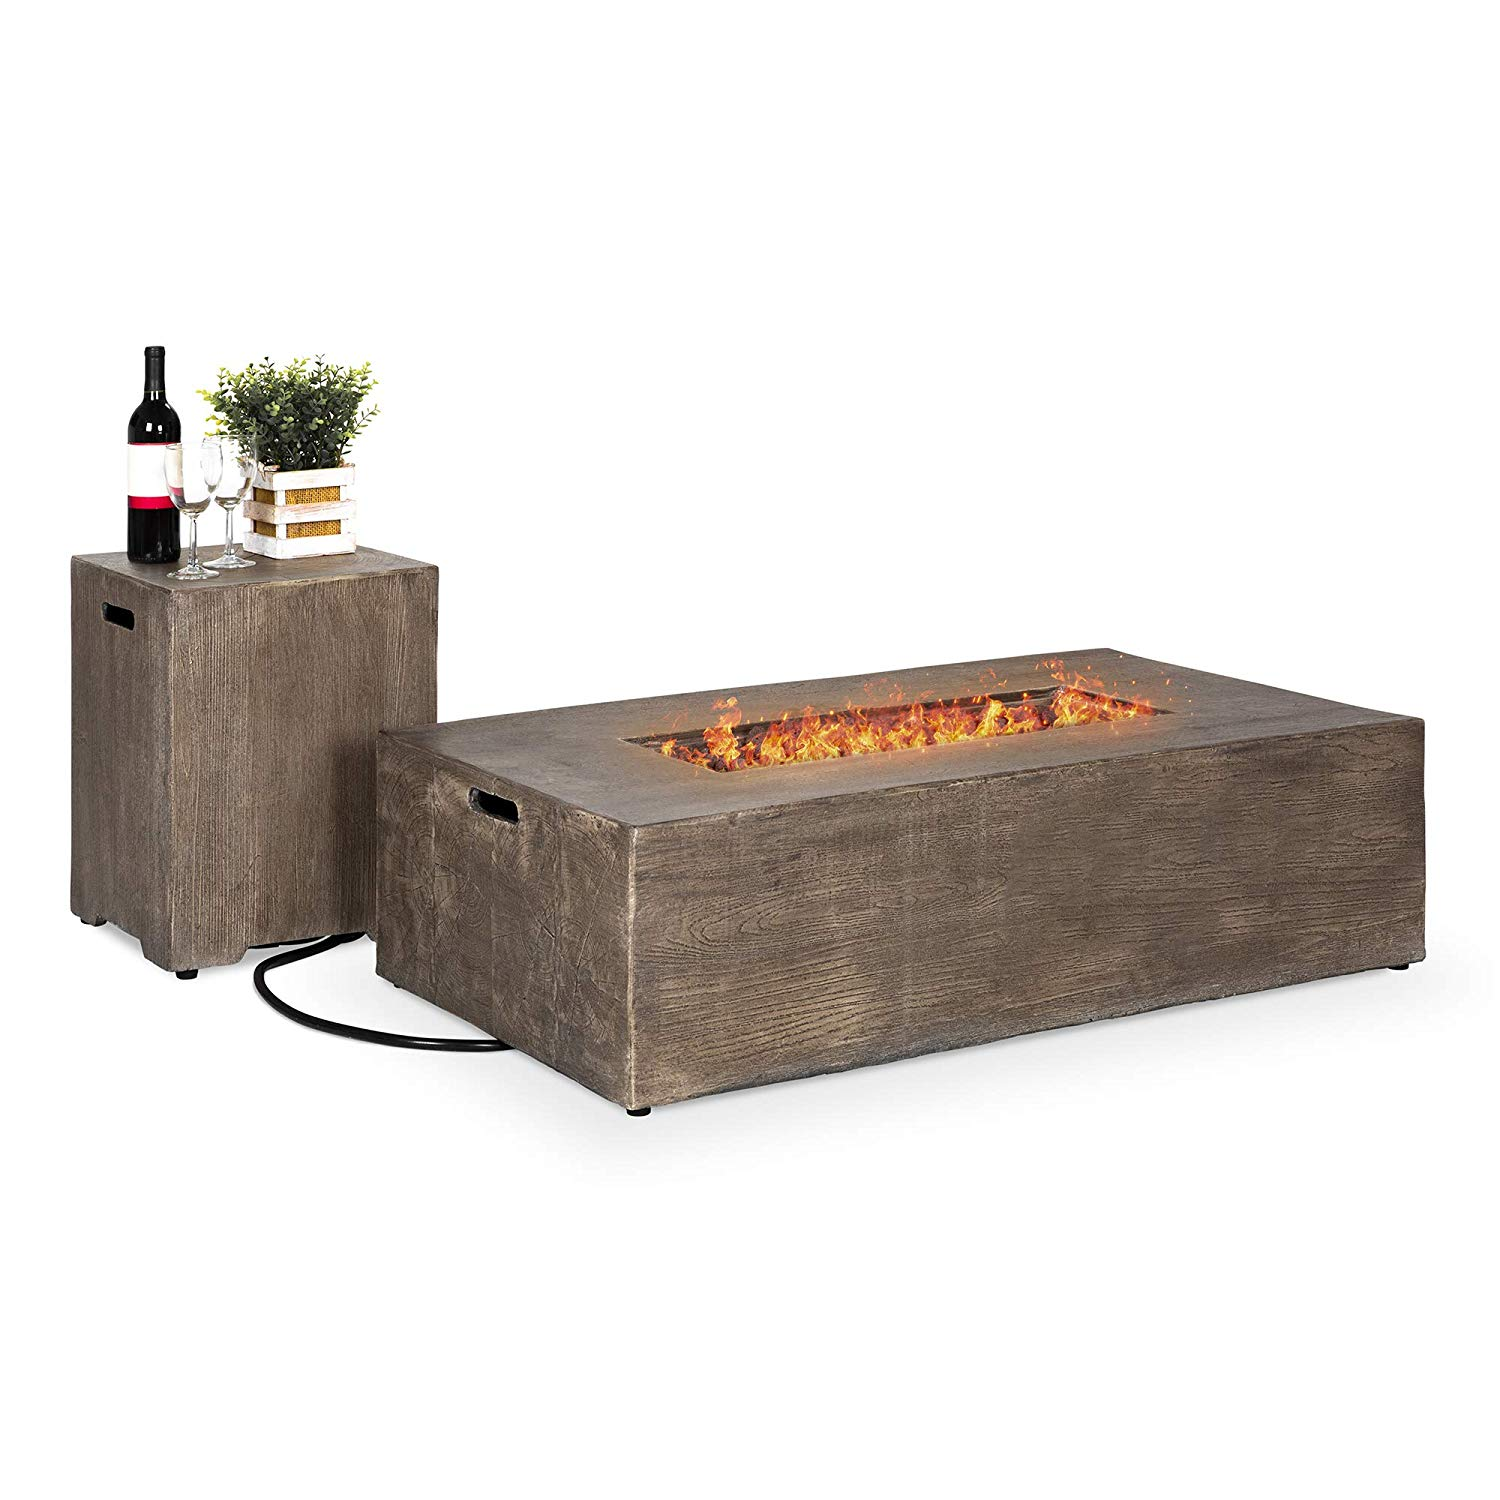 Best Choice Products Outdoor Patio Rustic Farmhouse Propane Fire Pit